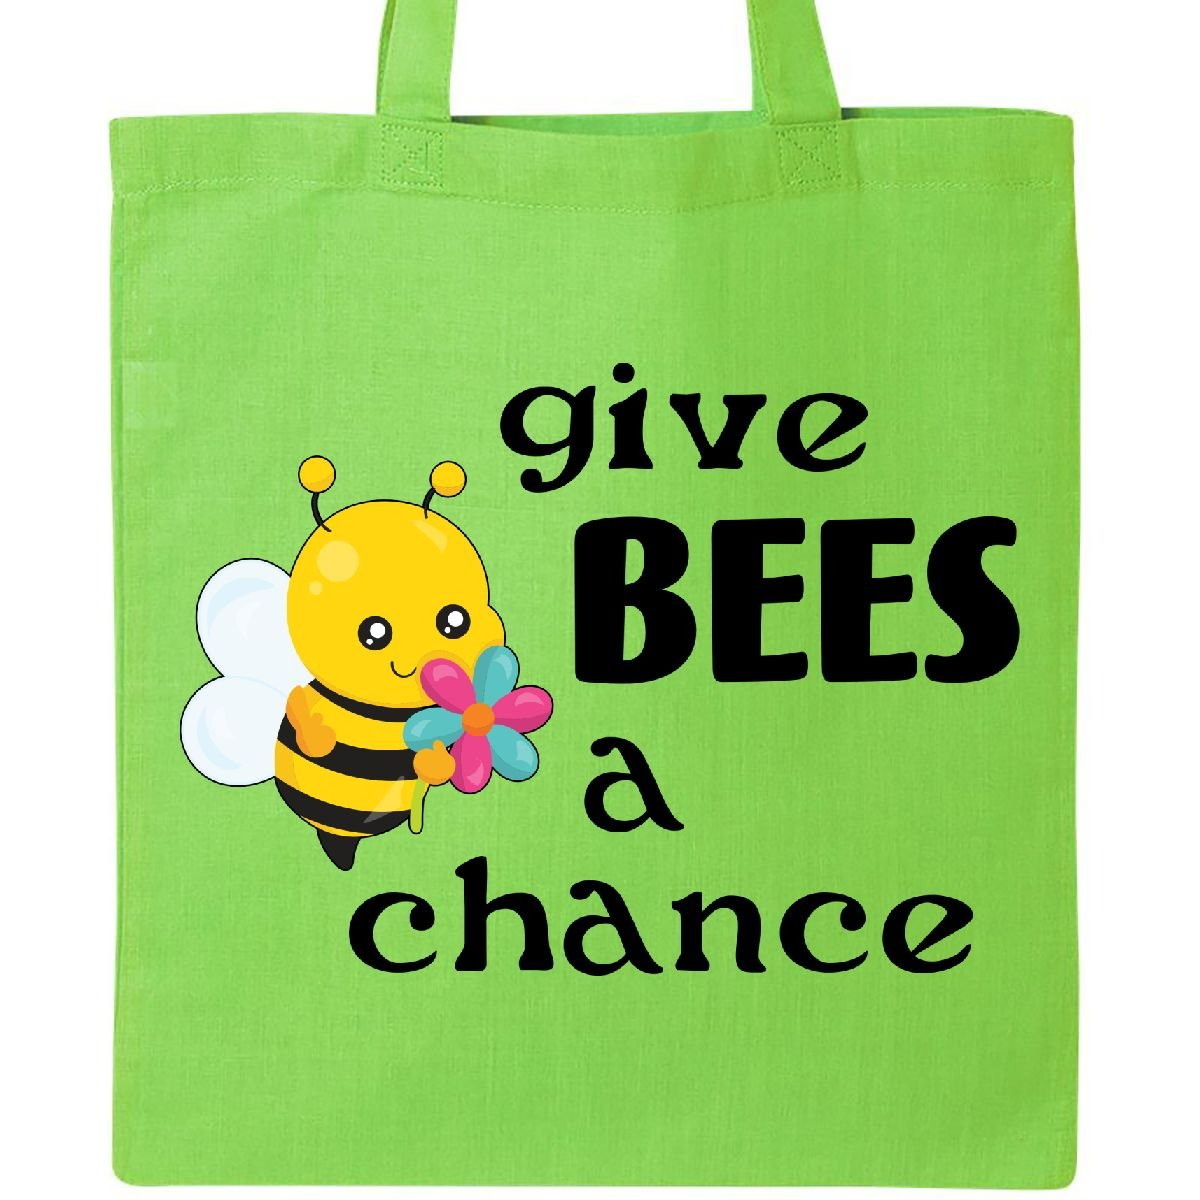 Inktastic Give Bees A Chance Cute Beeトートバッグ One Size B06WW9KXN1  ライムグリーン